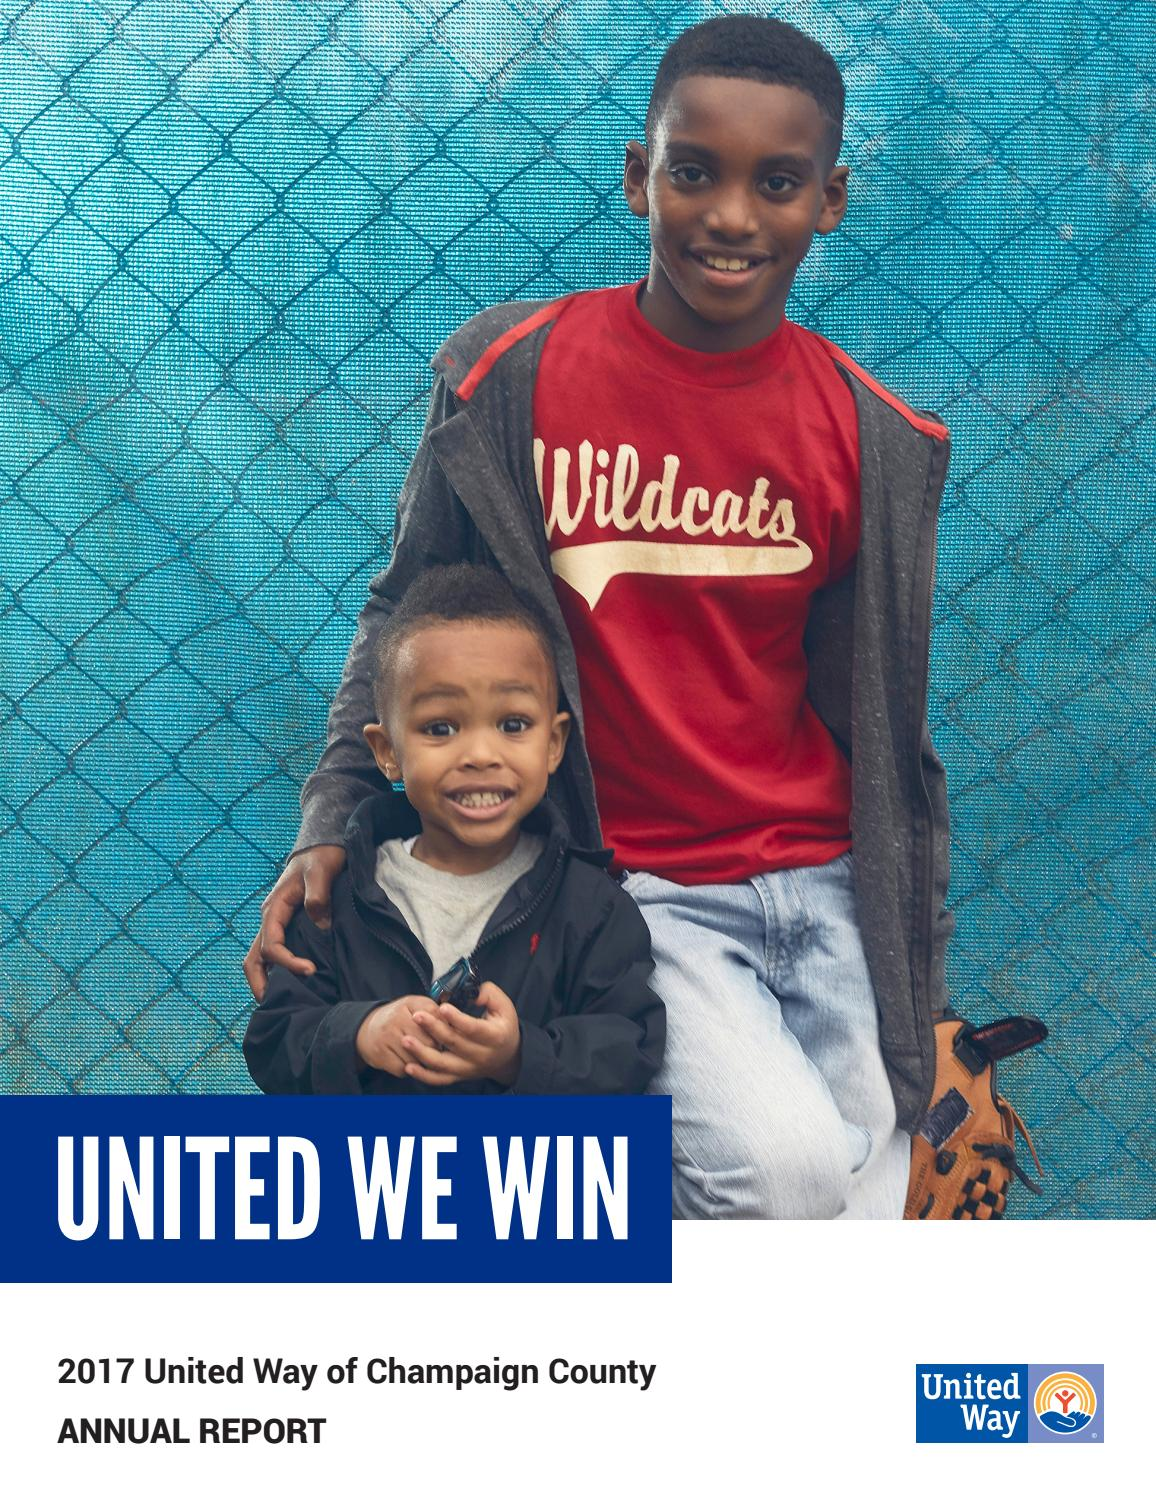 2017 United Way of Champaign County Annual Report by Mary Noel - issuu